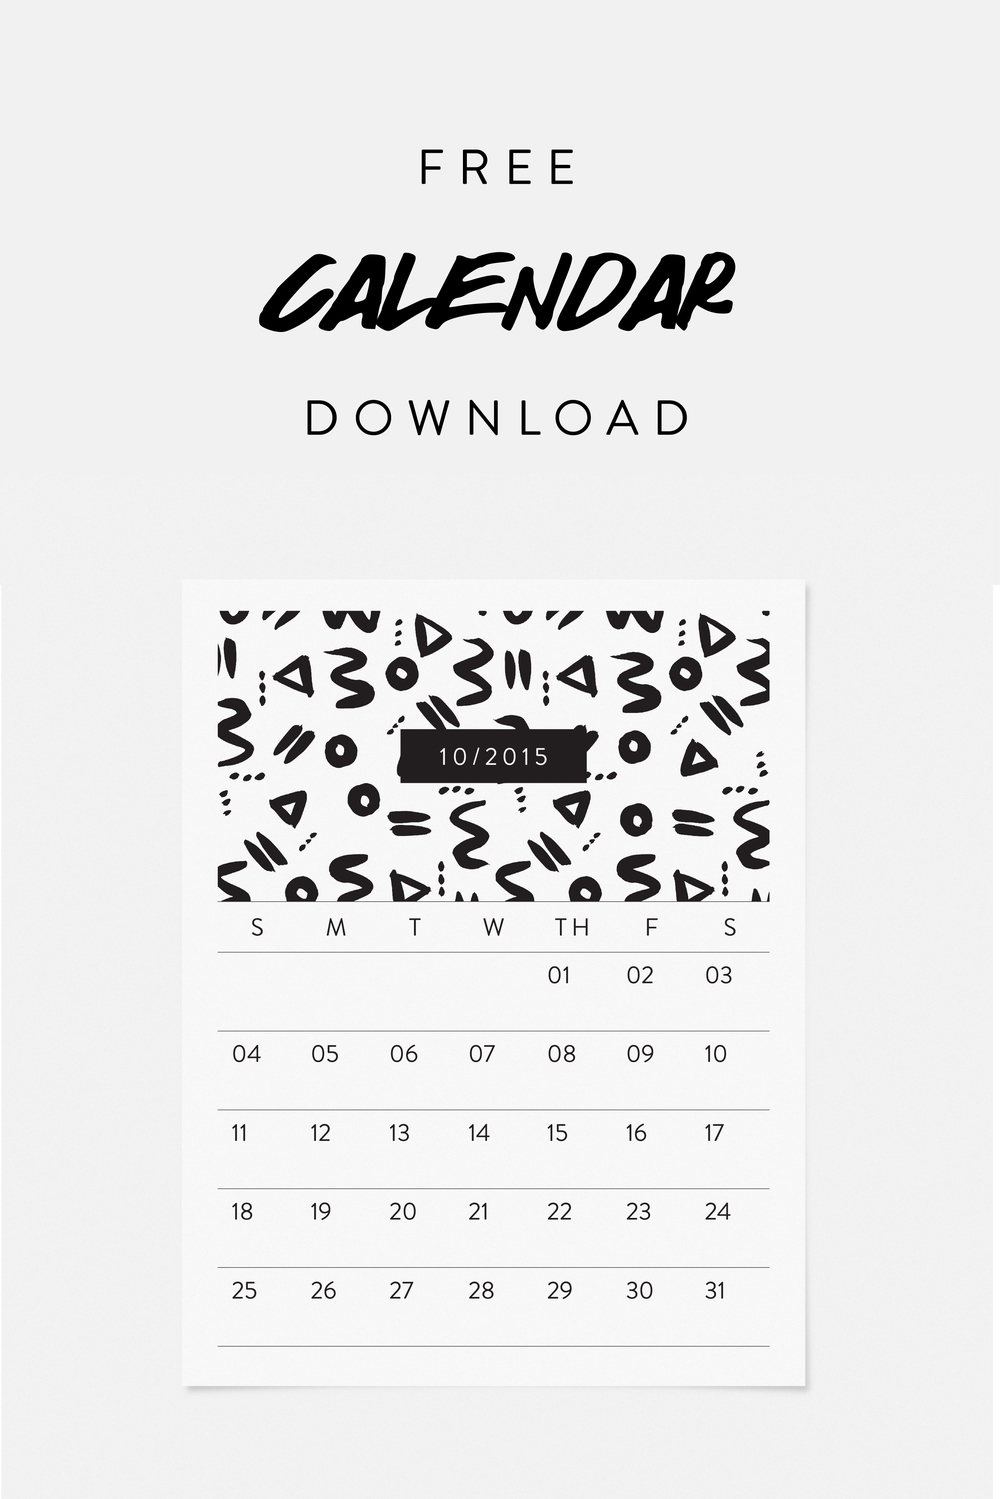 Free October 2015 Calendar Download featuring an original illustration from designer Jaymee Srp.  Click here to download!